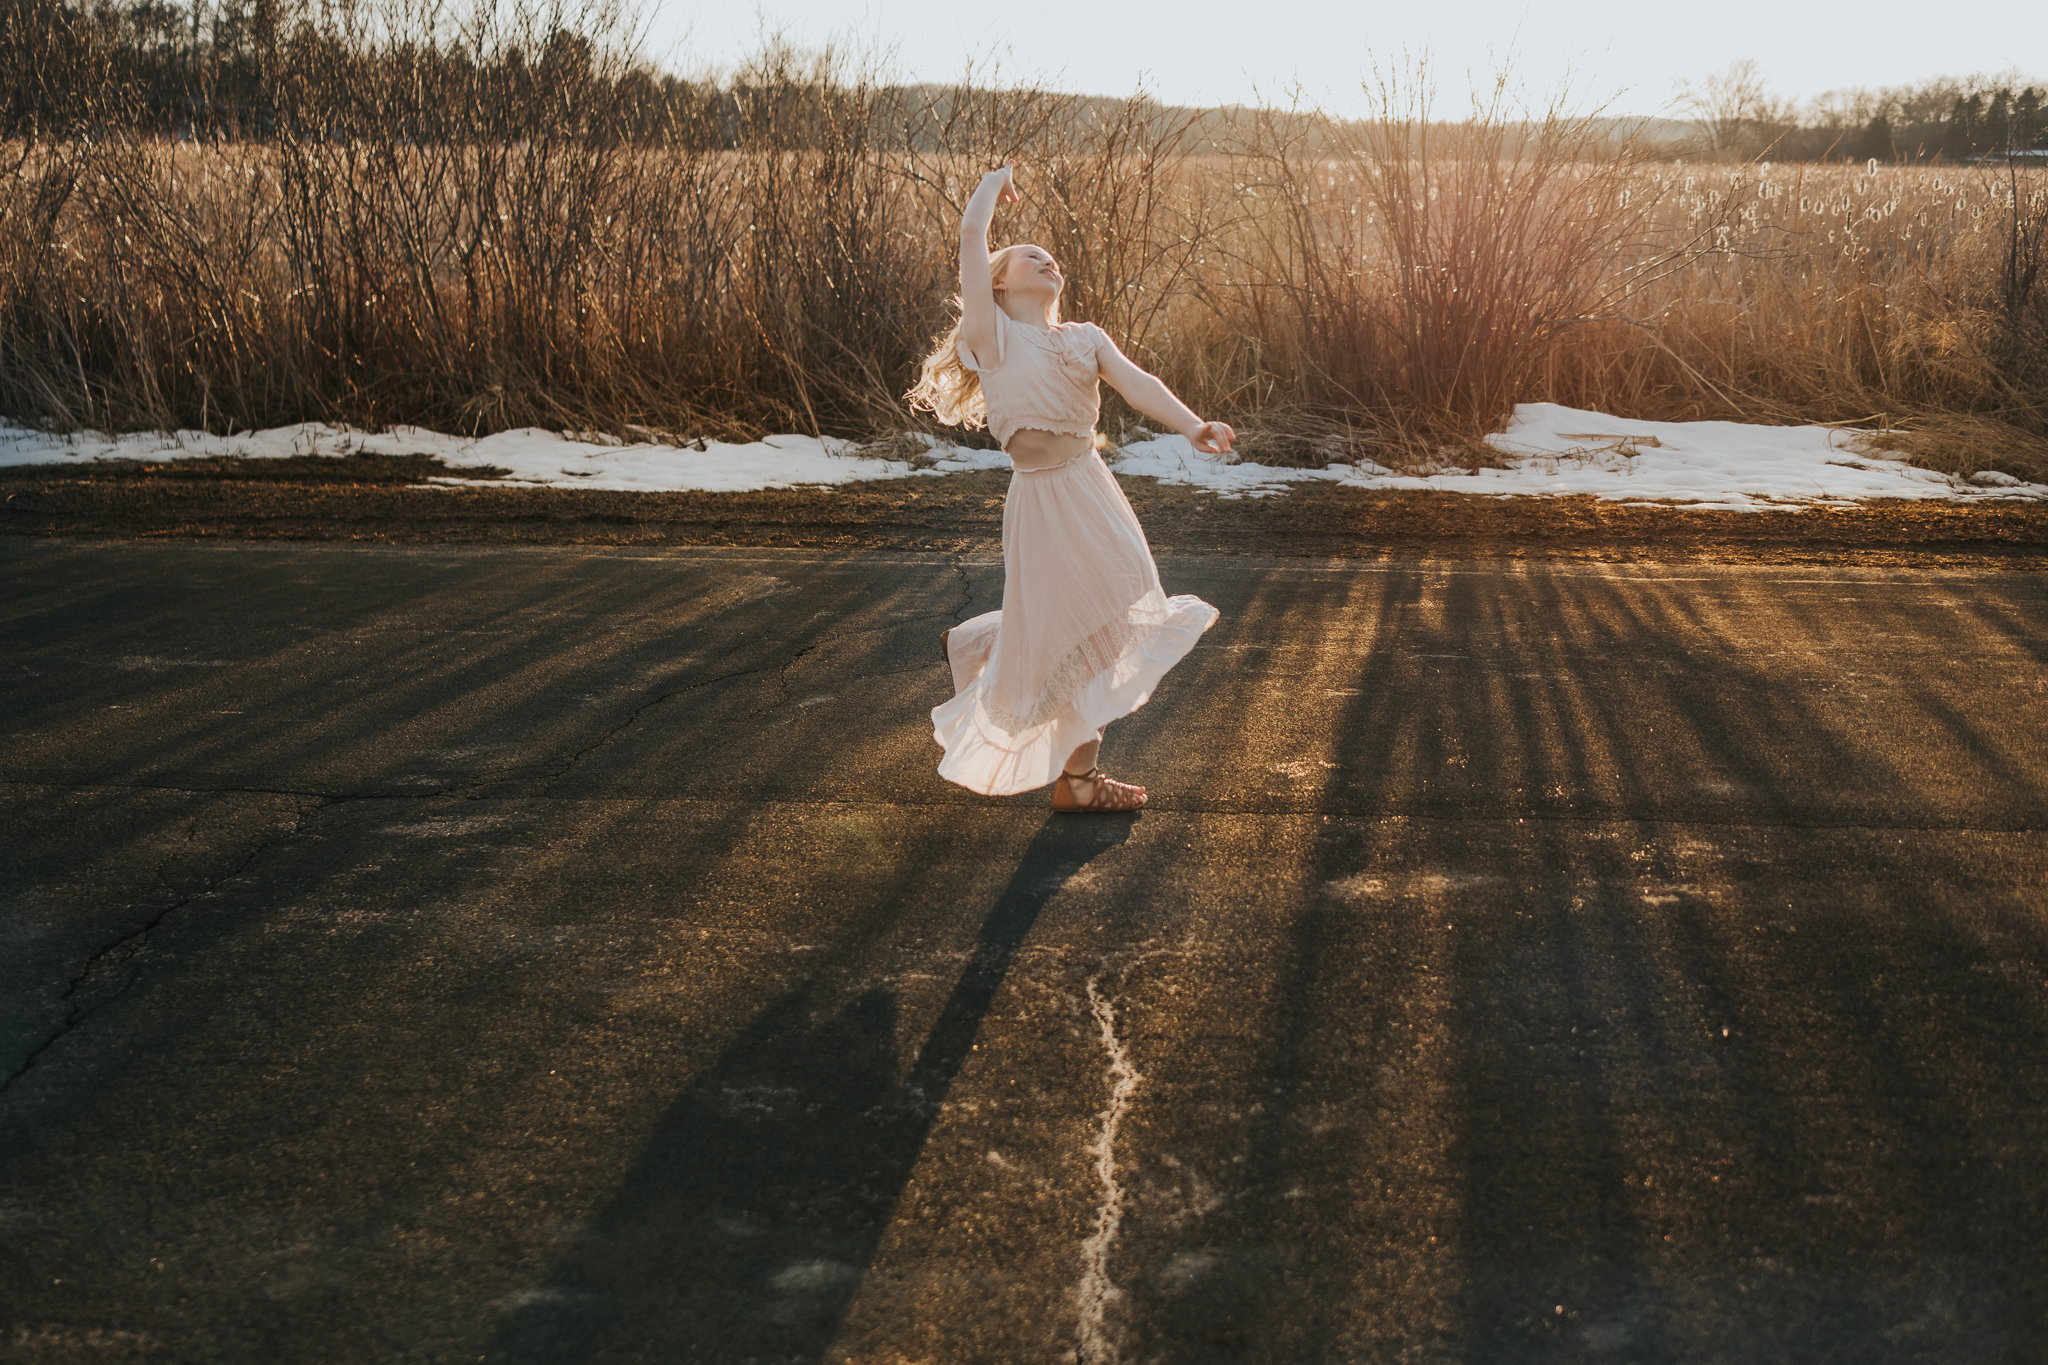 beautiful dancer on a country road - Wayzata Family Photography